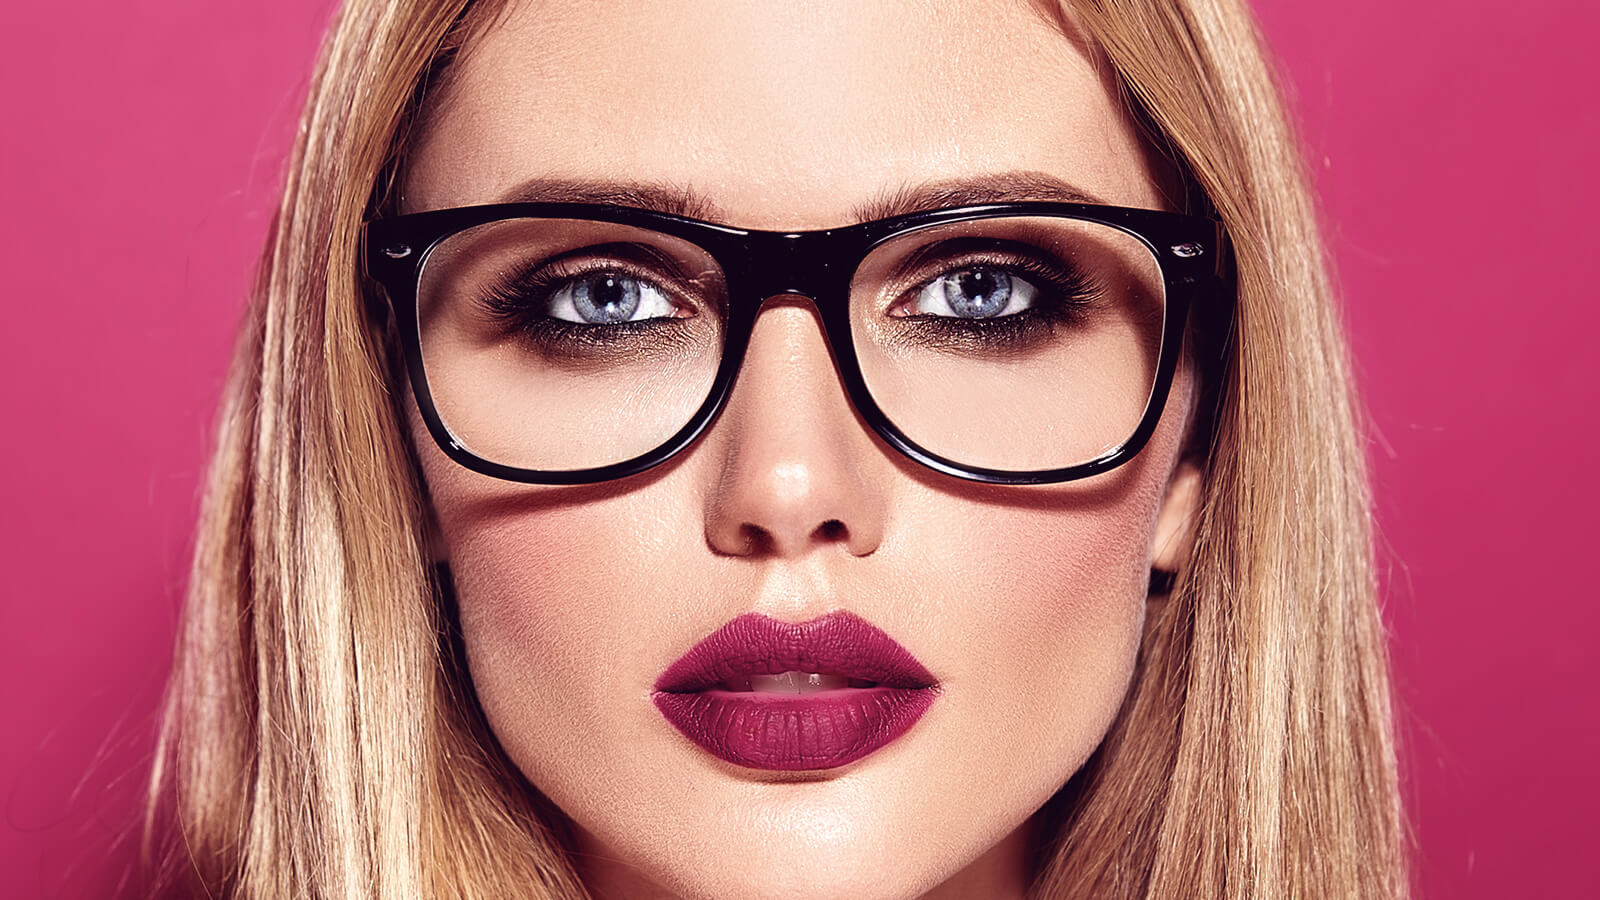 How to do makeup with glasses?